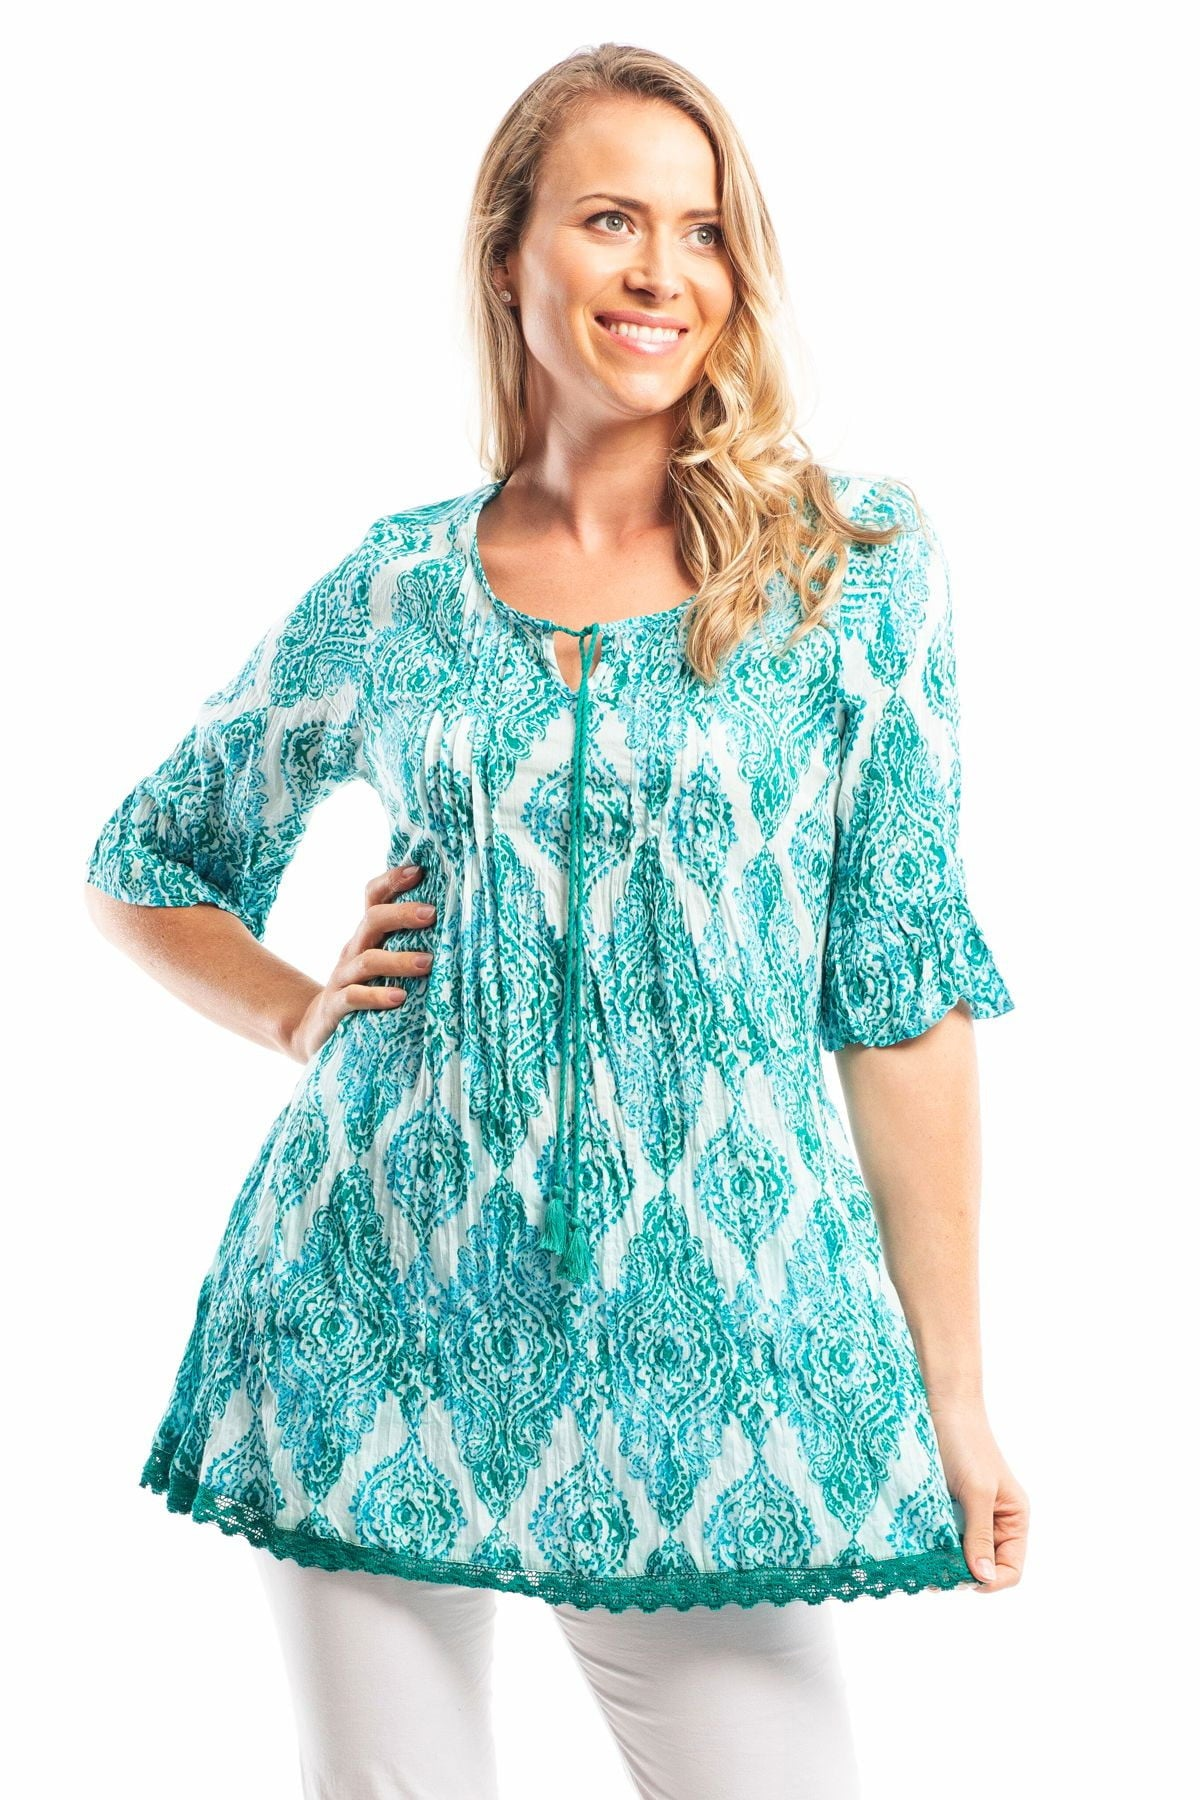 Aqua Desert Sun Cotton Lace Tunic Blouse | I Love Tunics | Tunic Tops | Tunic | Tunic Dresses  | womens clothing online